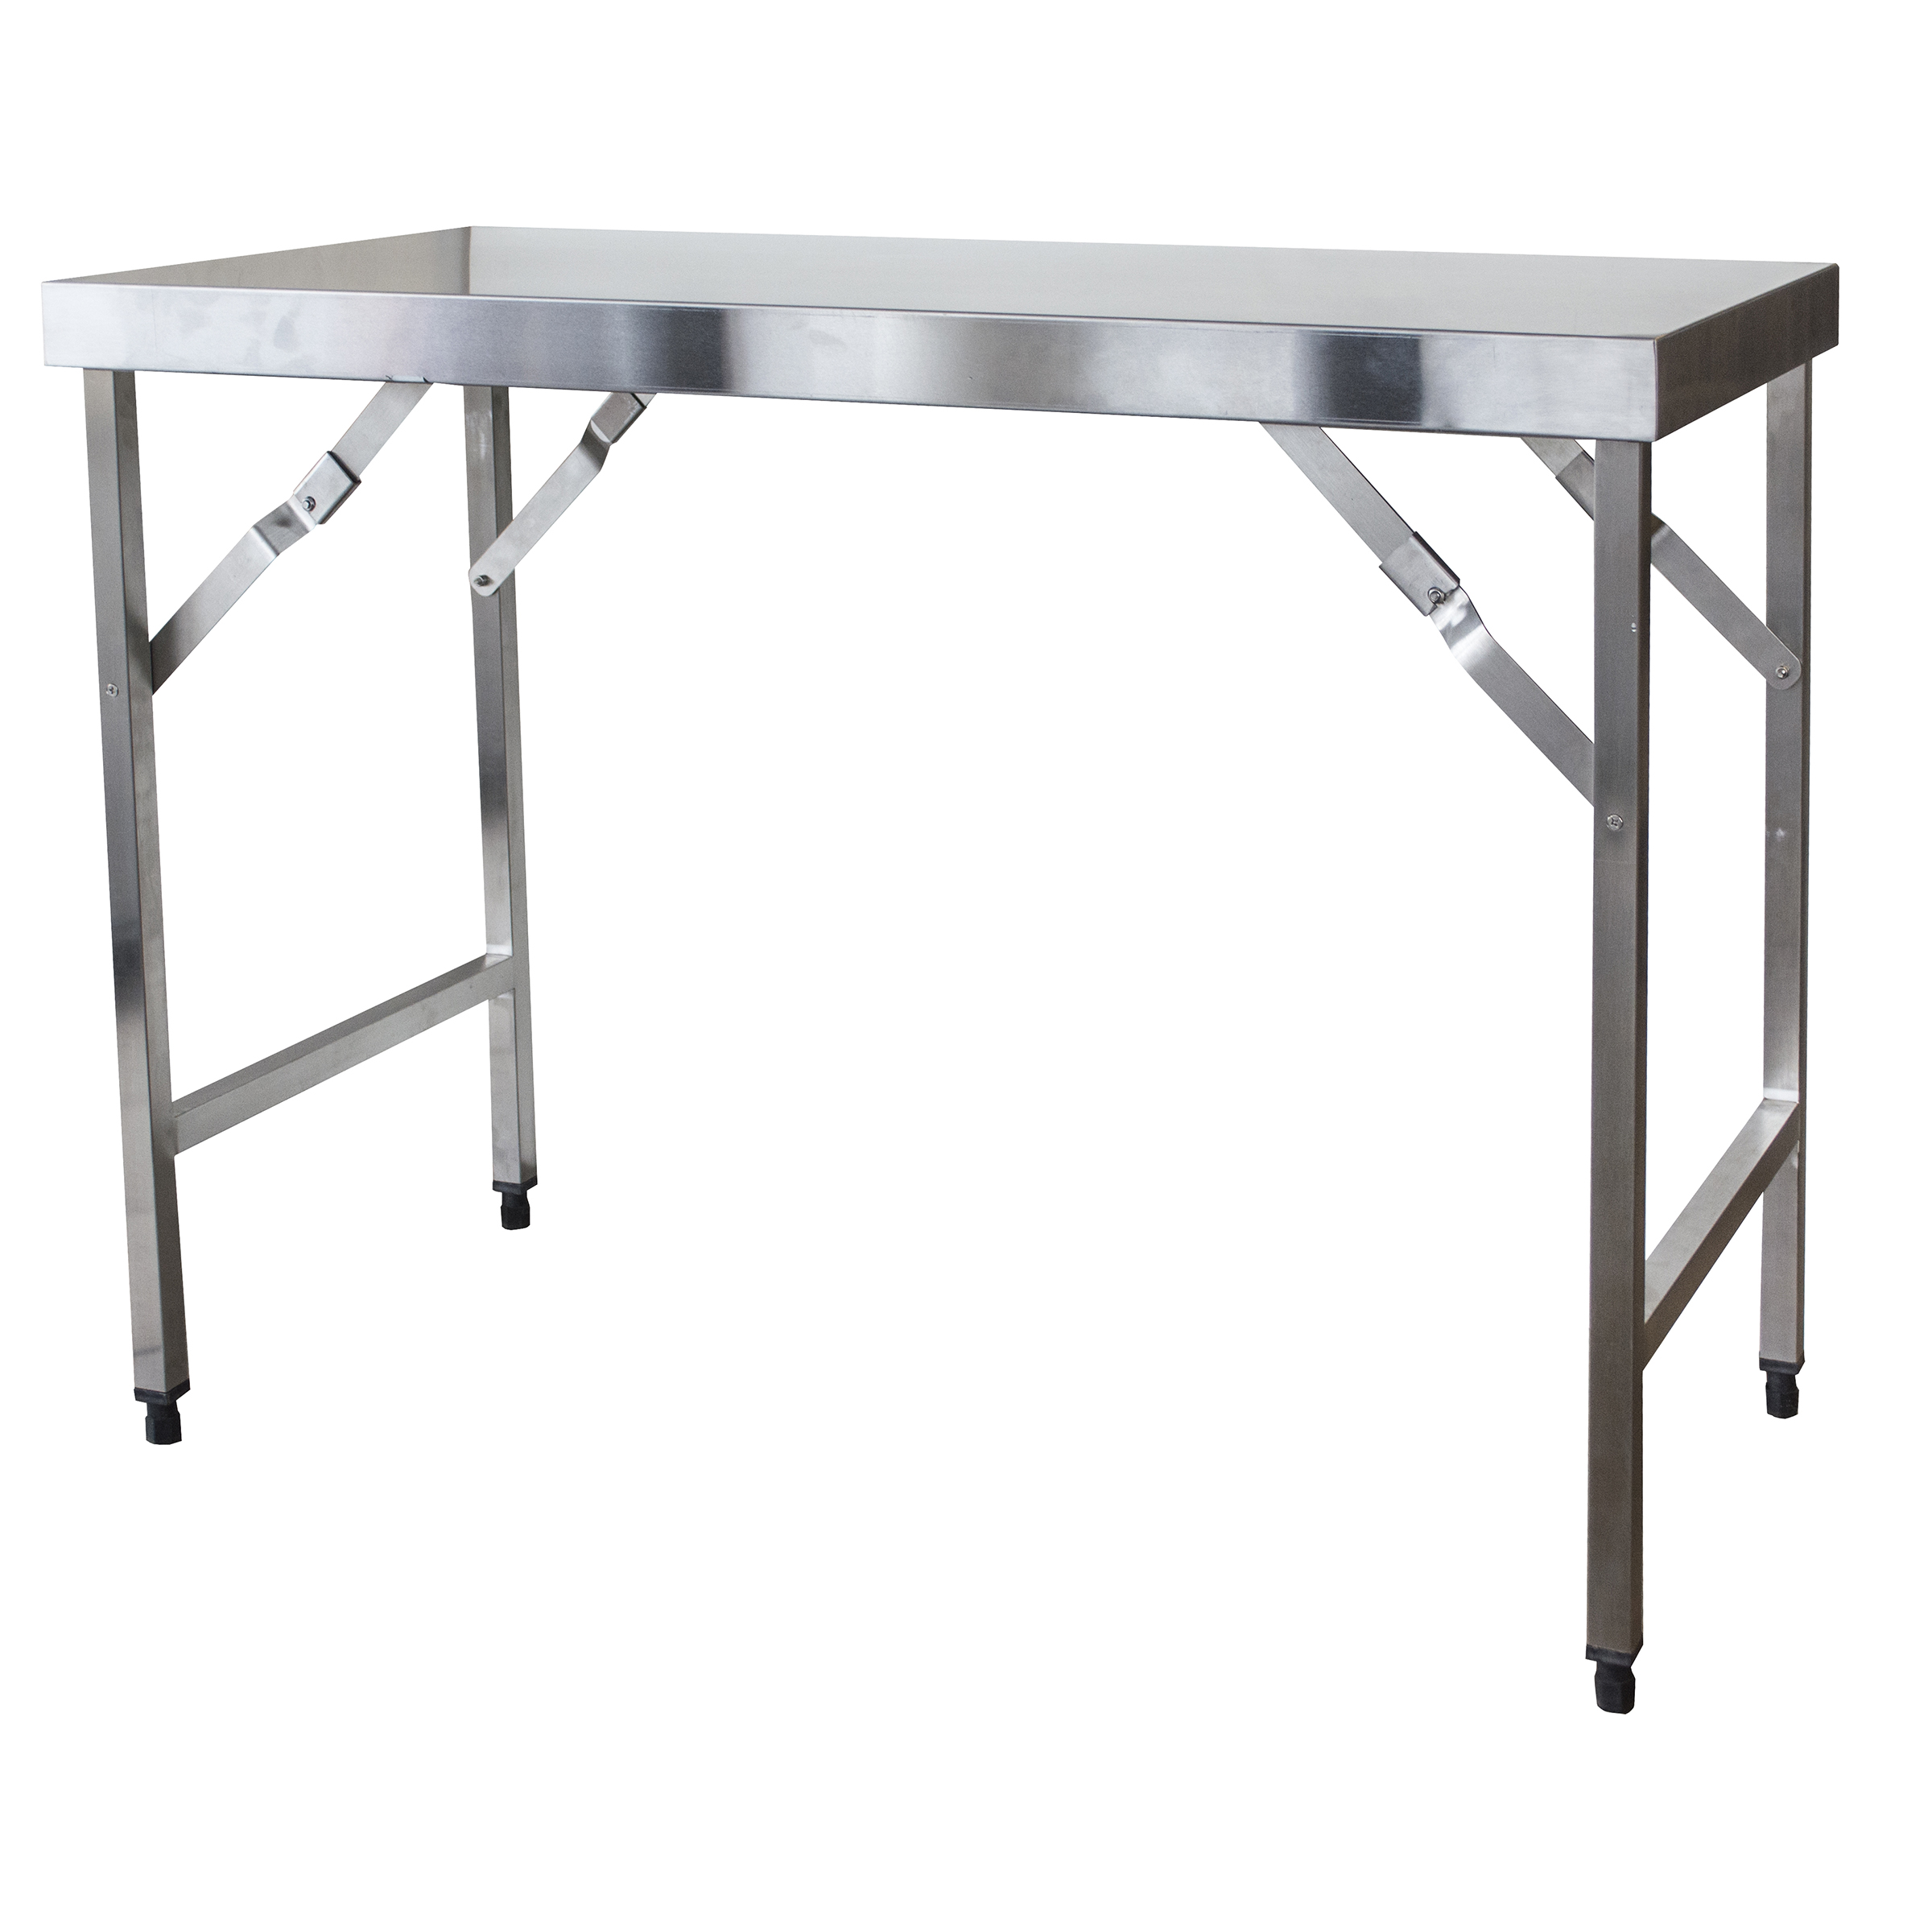 Stainless Steel Portable Folding Work Table